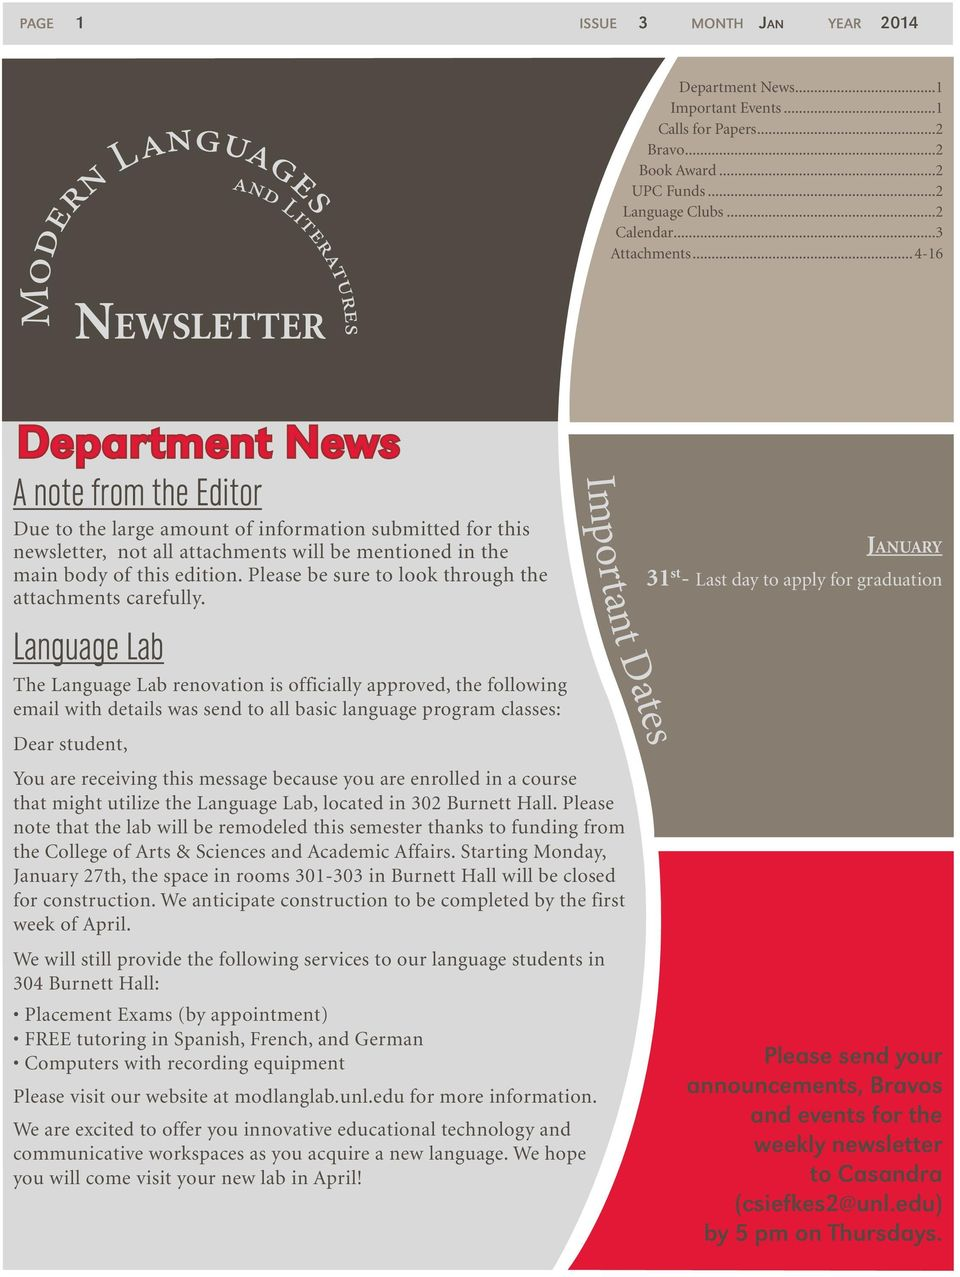 ..4-16 Department News A note from the Editor Due to the large amount of information submitted for this newsletter, not all attachments will be mentioned in the main body of this edition.